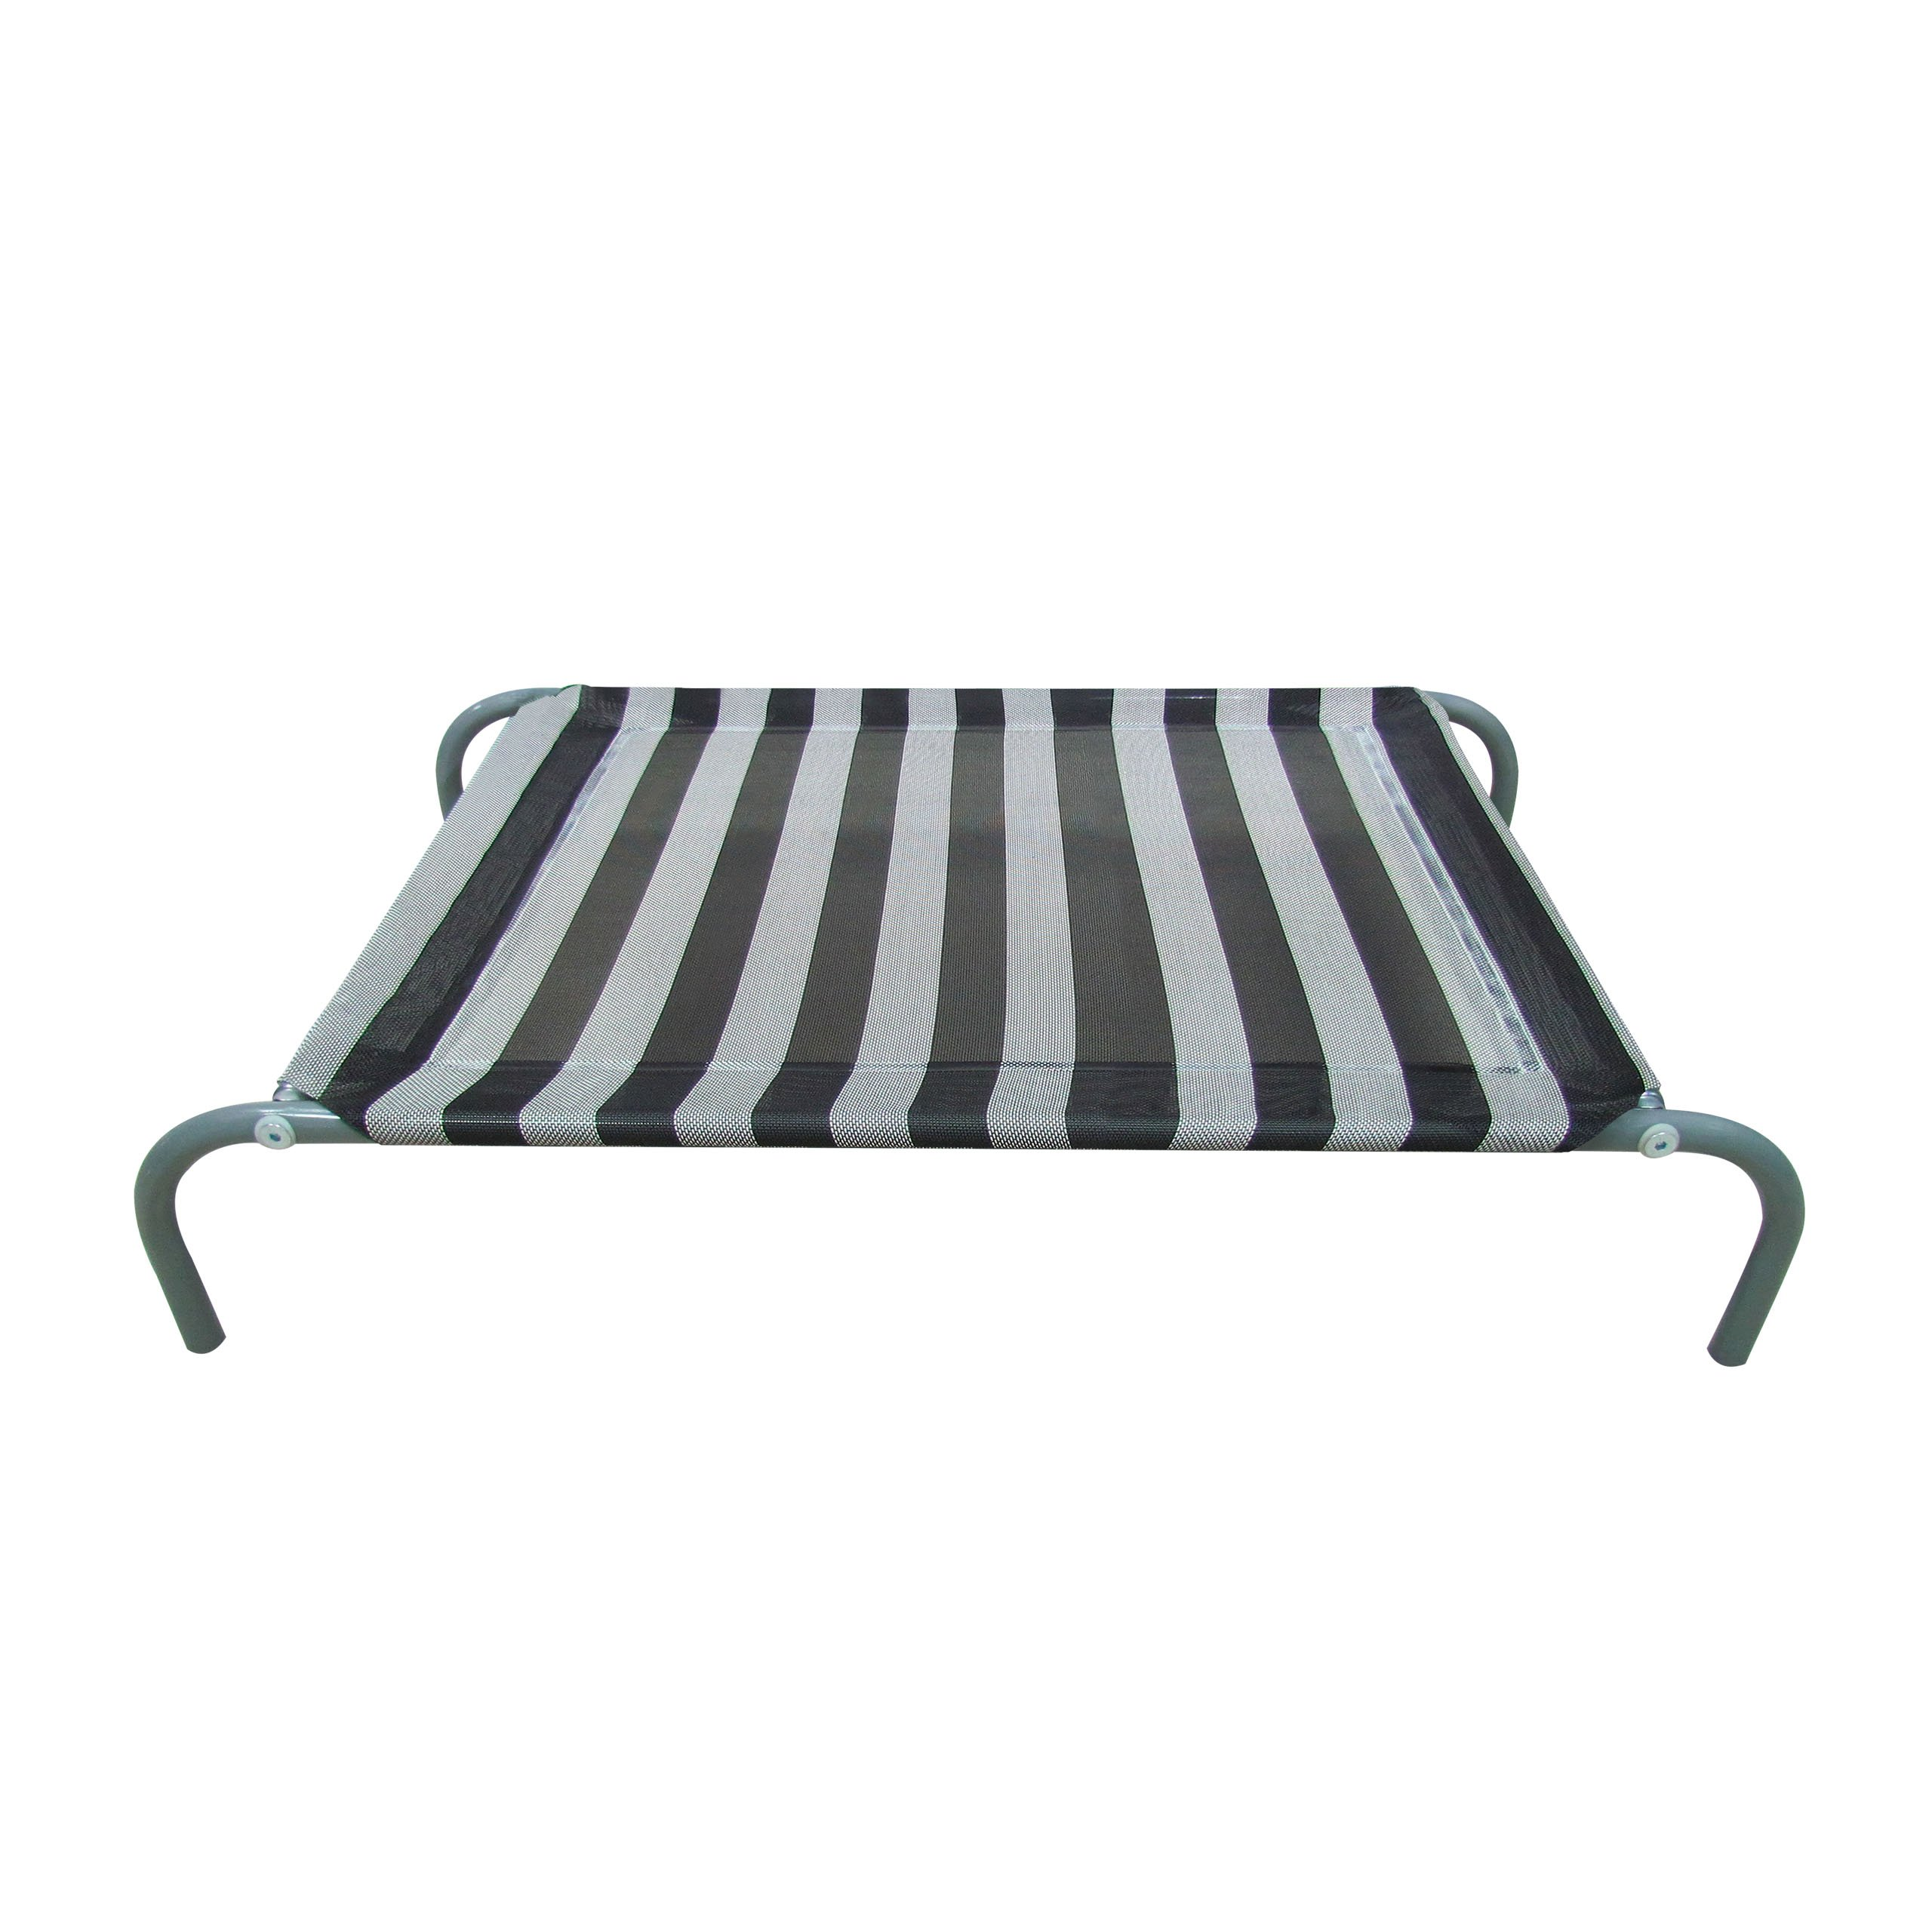 Allmax Elevated Pet Bed with Mesh Fabric and Steel Frame, Small, Black and White